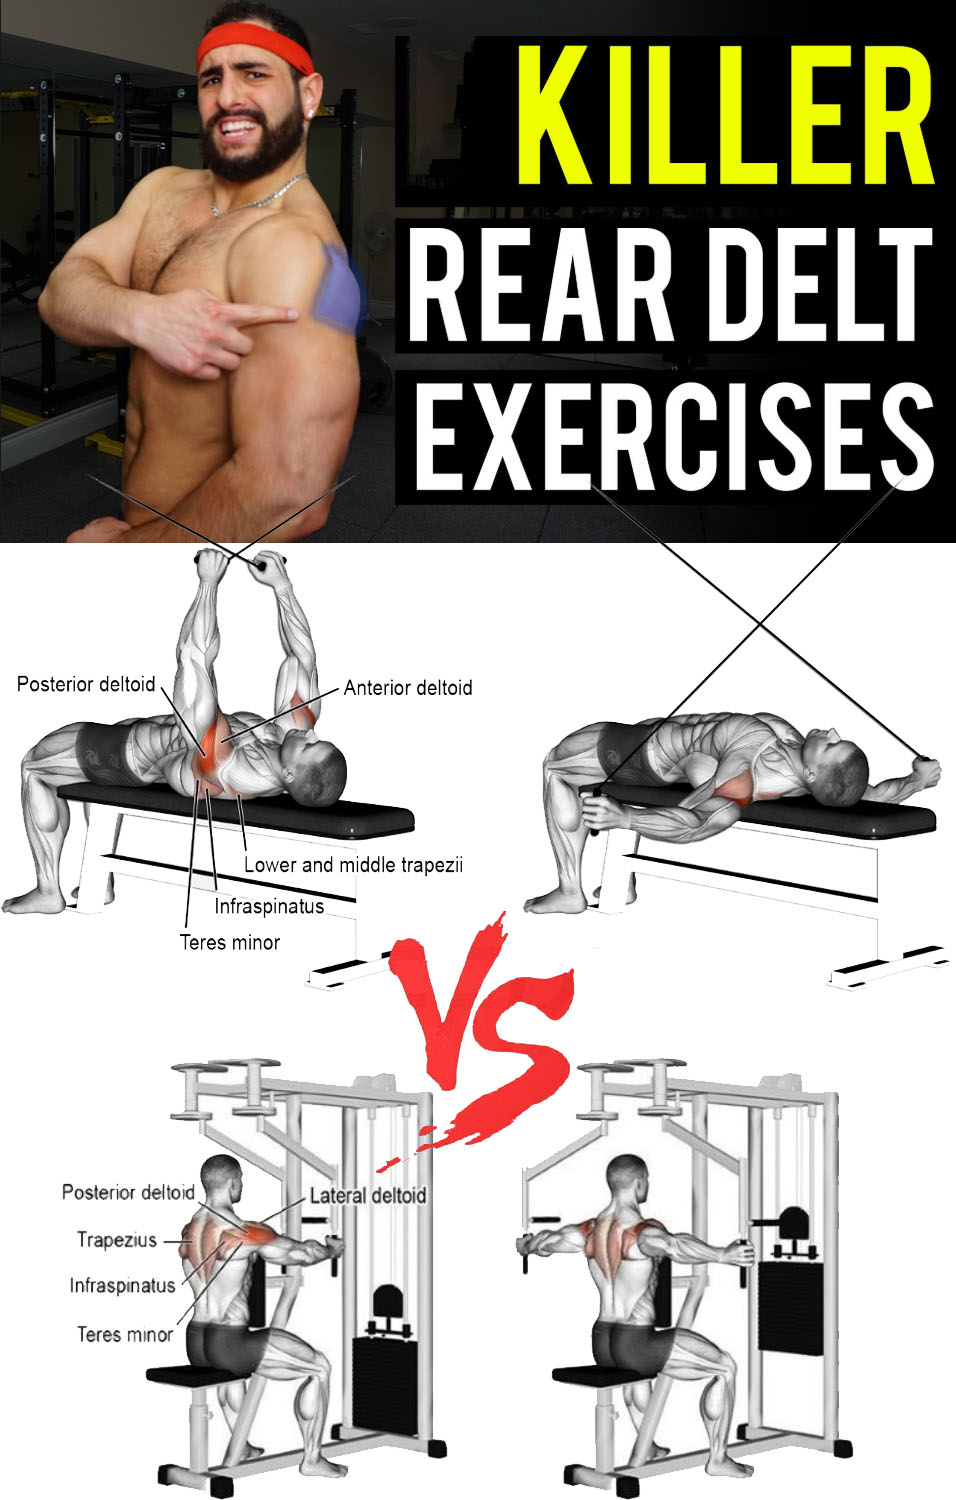 killer rear delt exercises